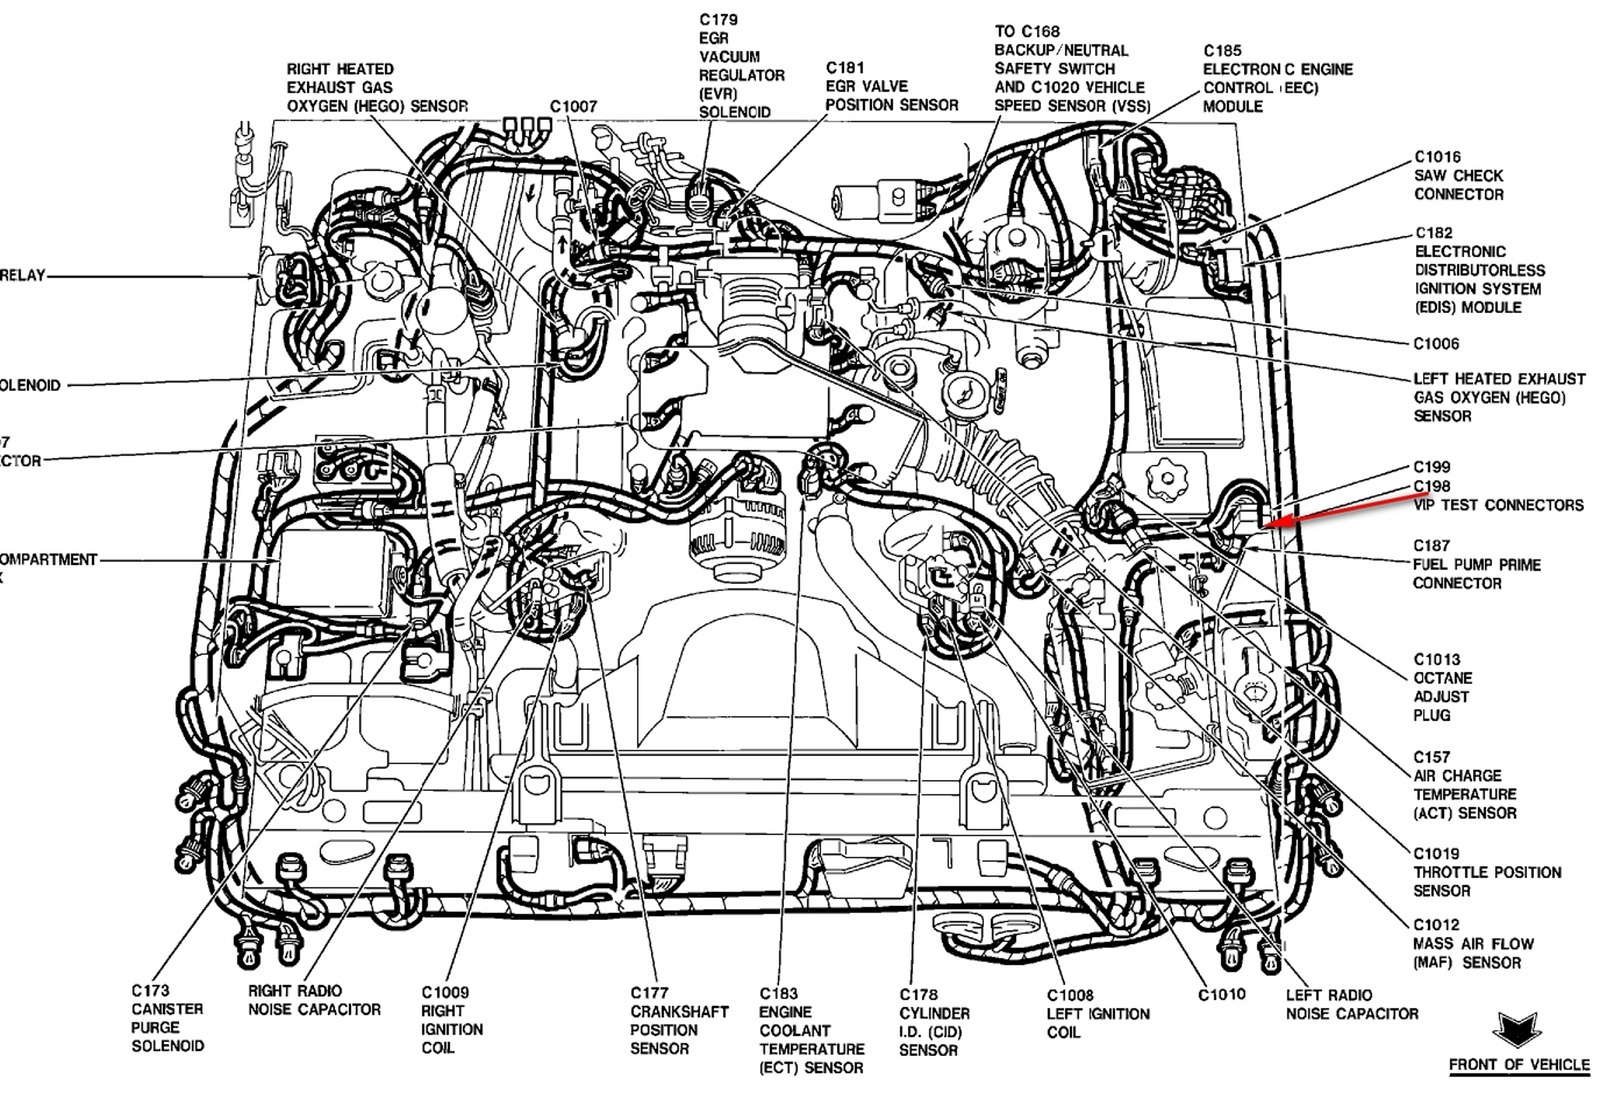 2000 Mercury Grand Marquis Wiring Diagram Online Lincoln Contential 1985 Vehicle Coolant Temp Sensor Location Free Download